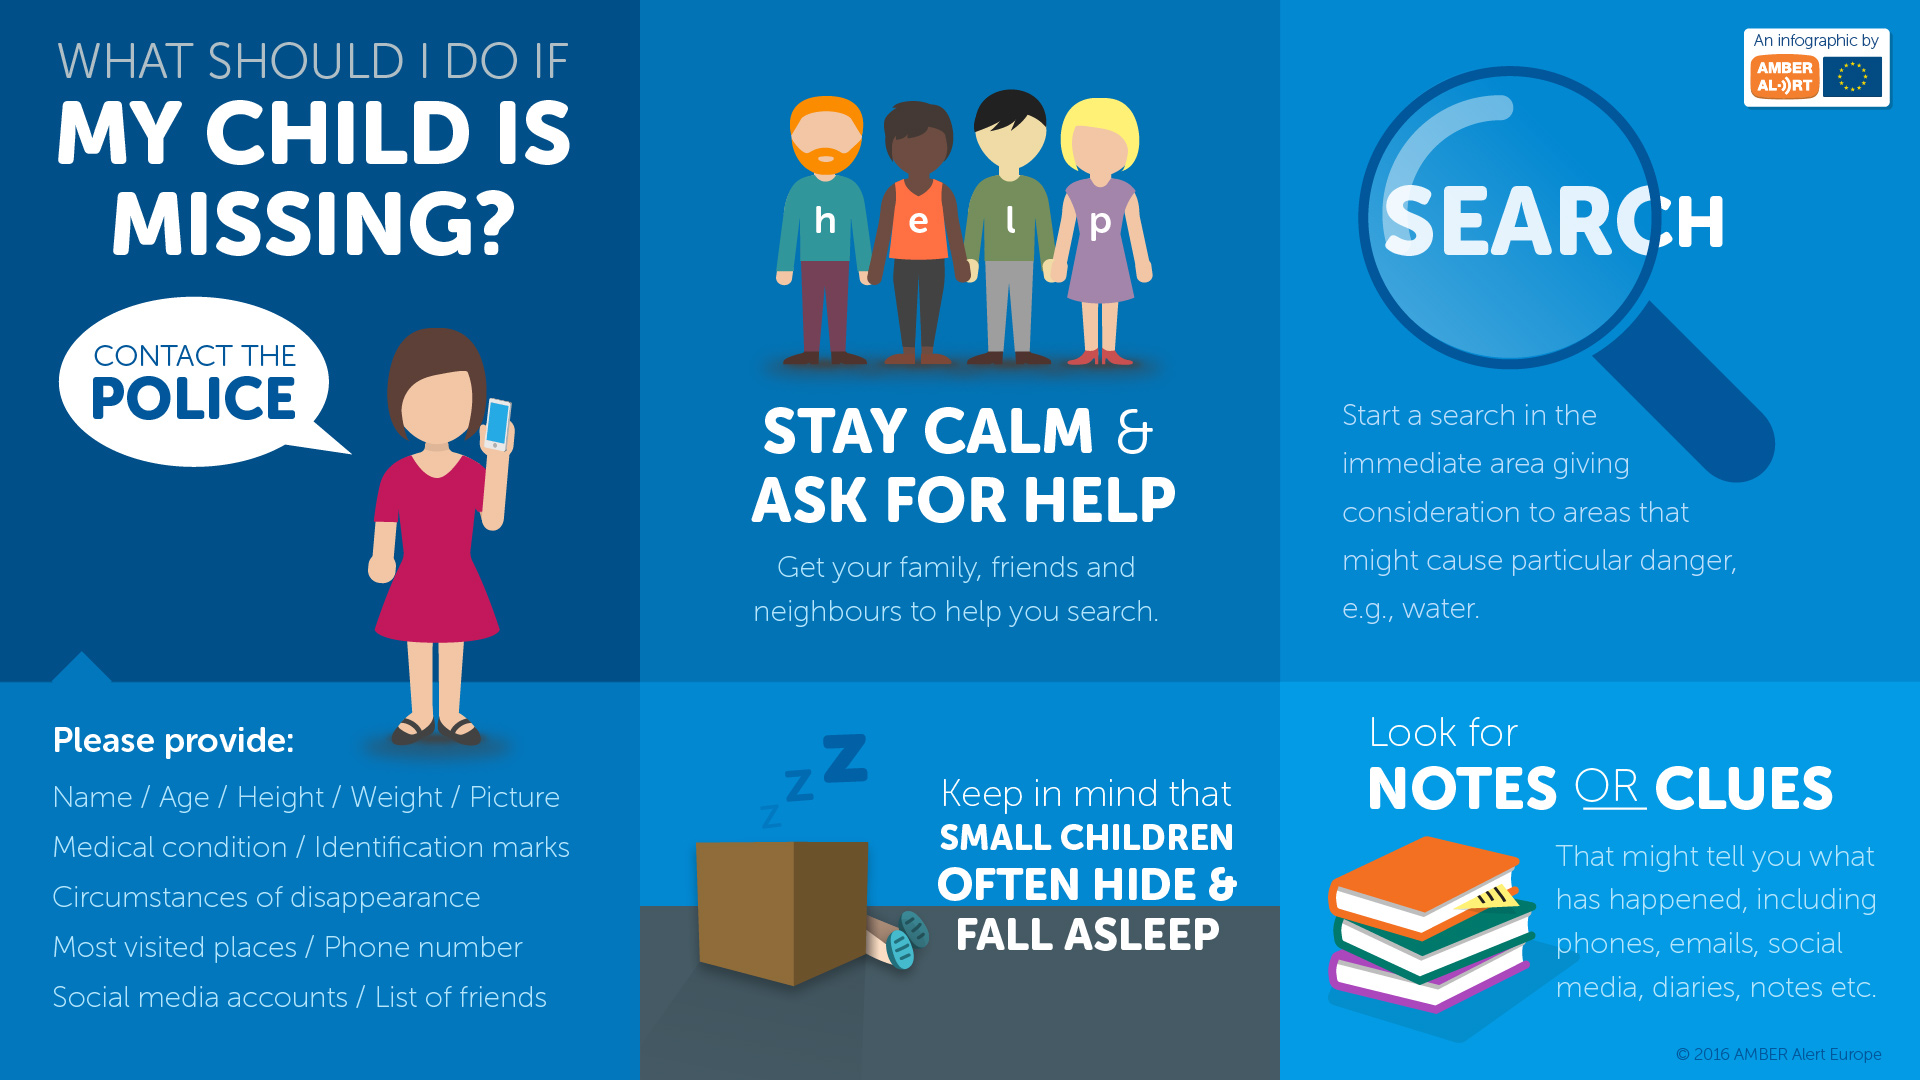 What to do when my child is missing